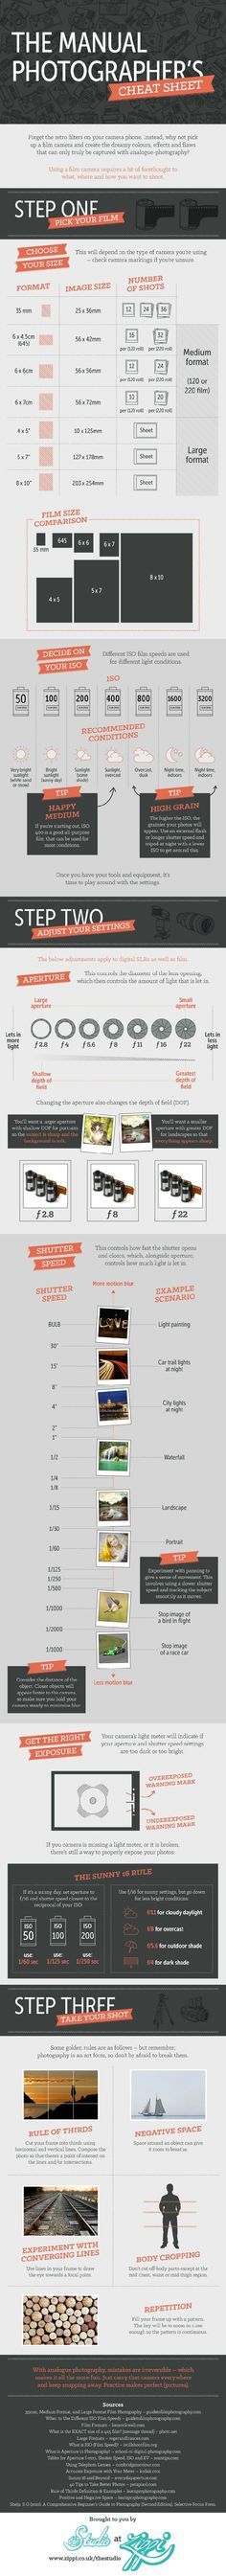 The Manual Photographer's Cheat Sheet | PictureCorrect